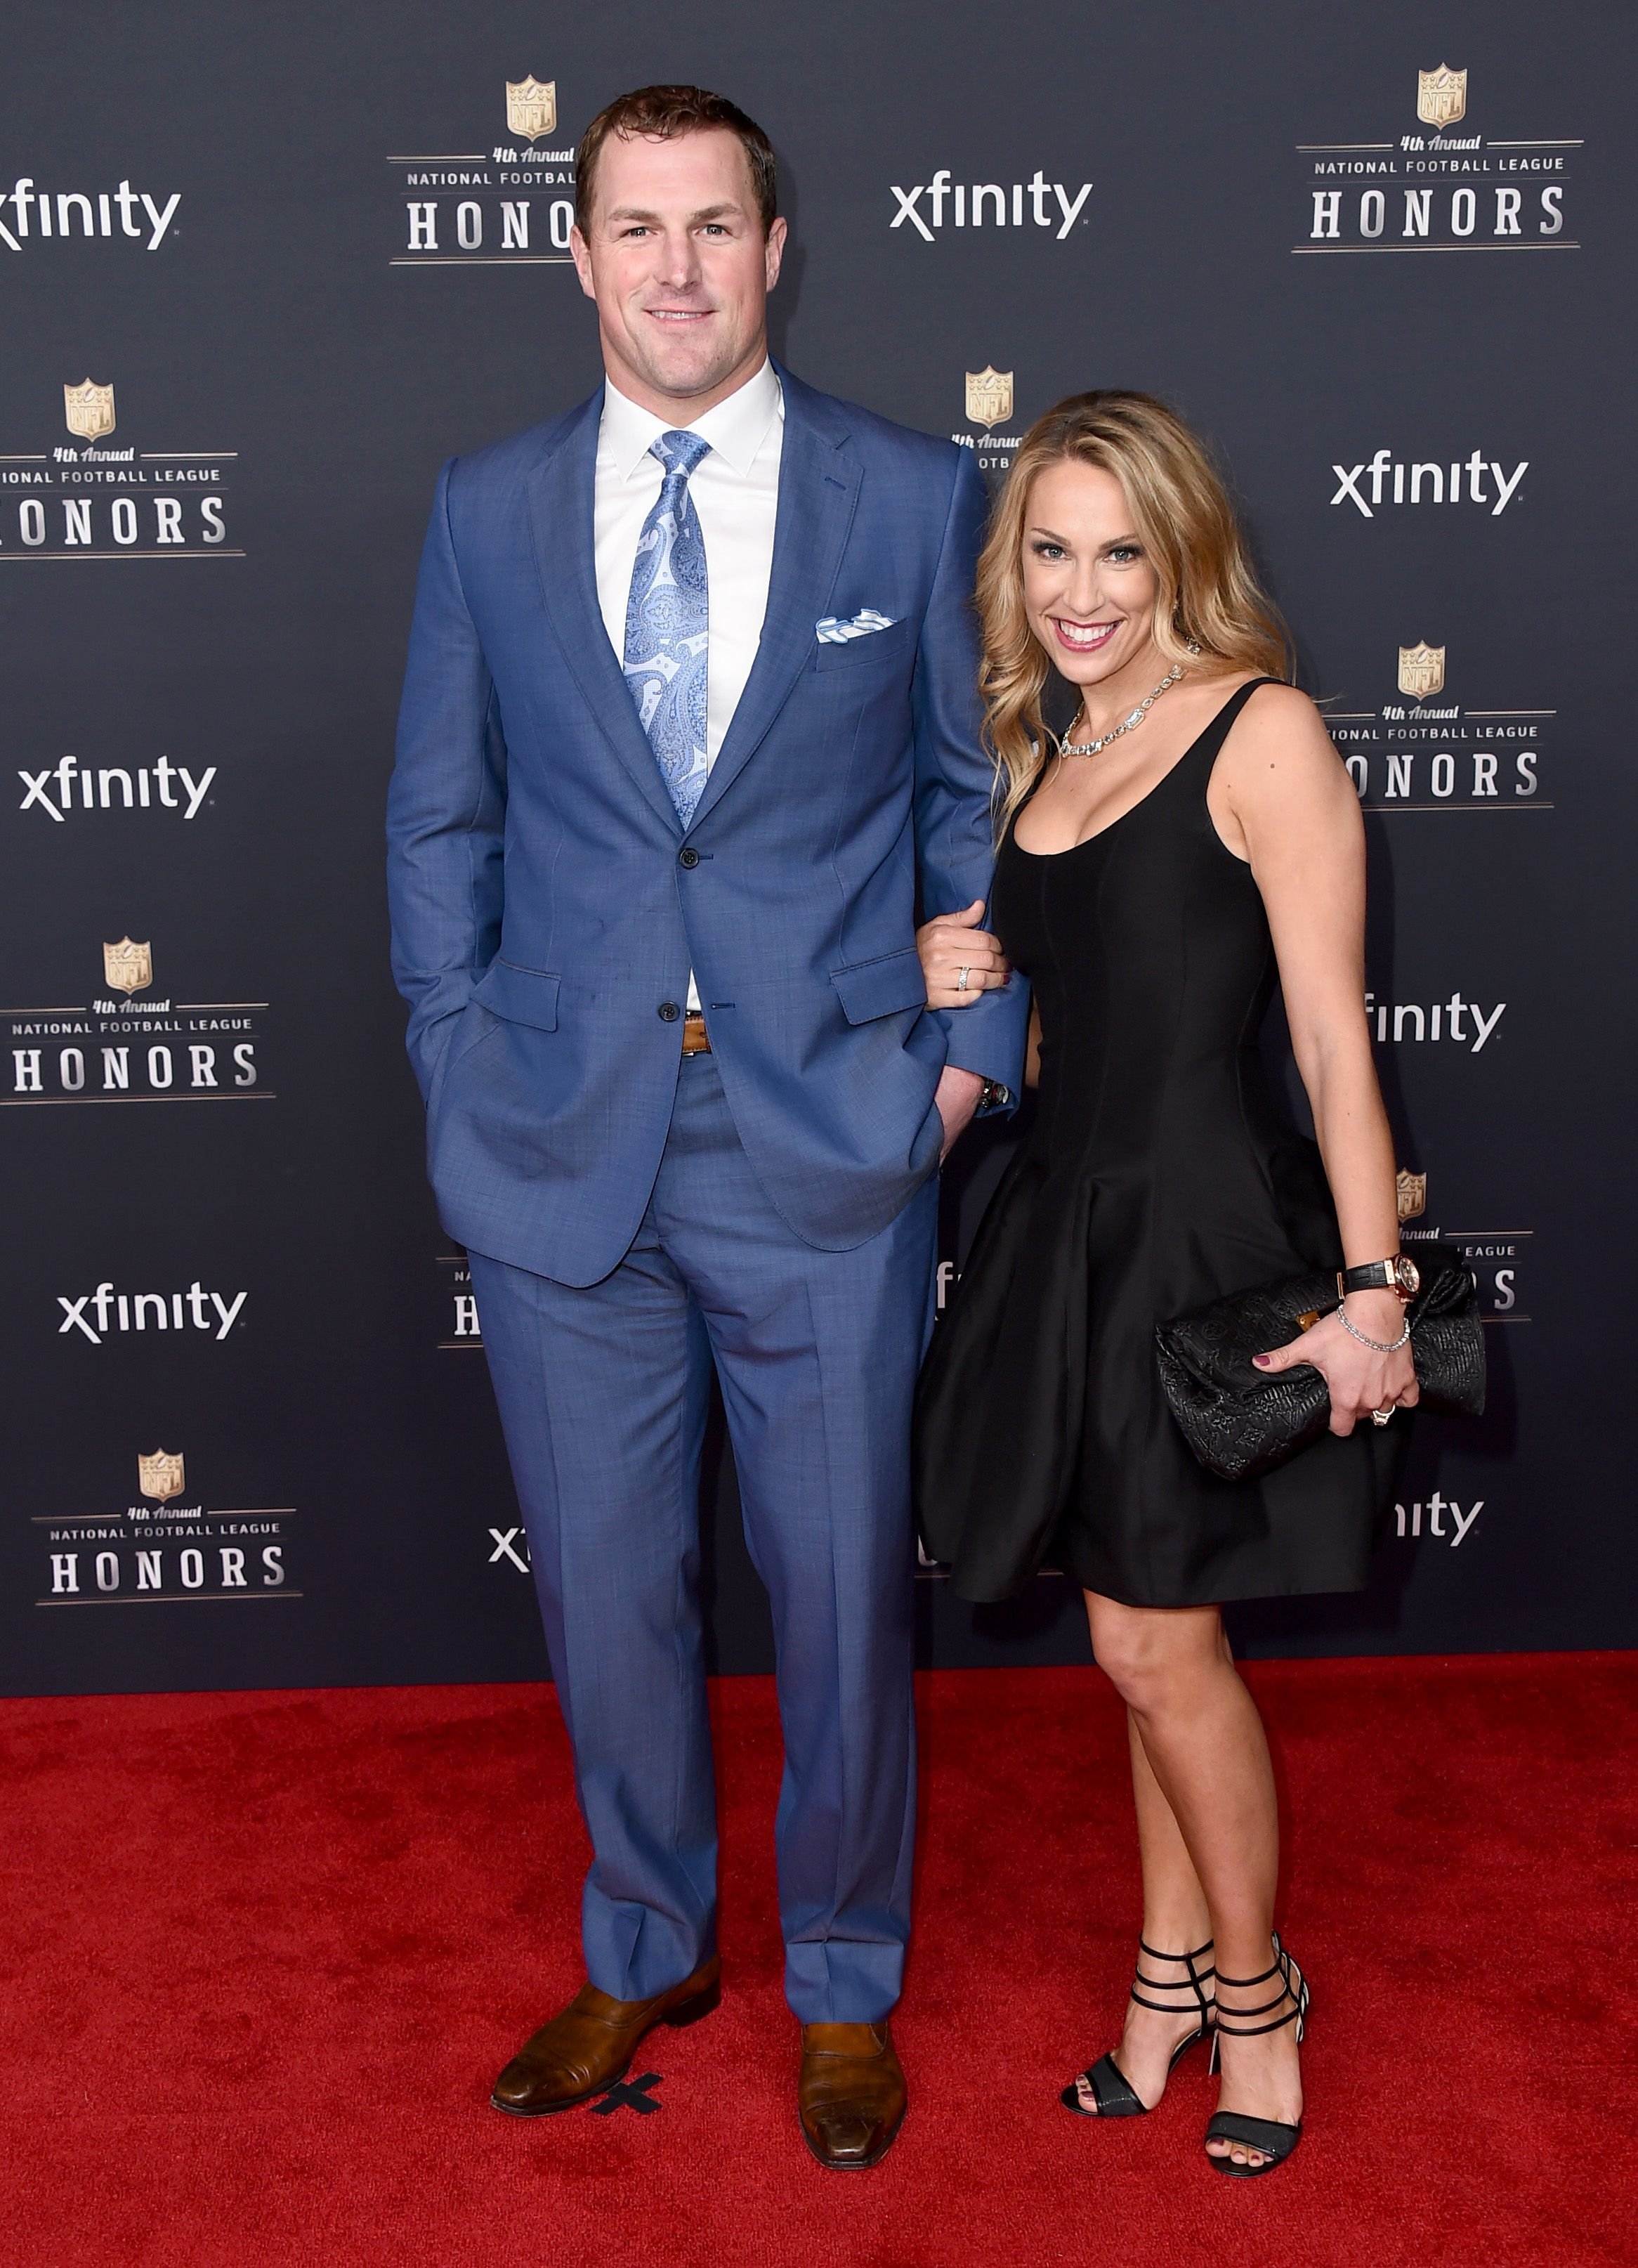 Jason Witten Of The Dallas Cowboys And Michelle Witten Arrive In Style At The 4th Annual Nfl Honors Nfl Fans Dallas Cowboys Dallas Cowboys Cheerleaders